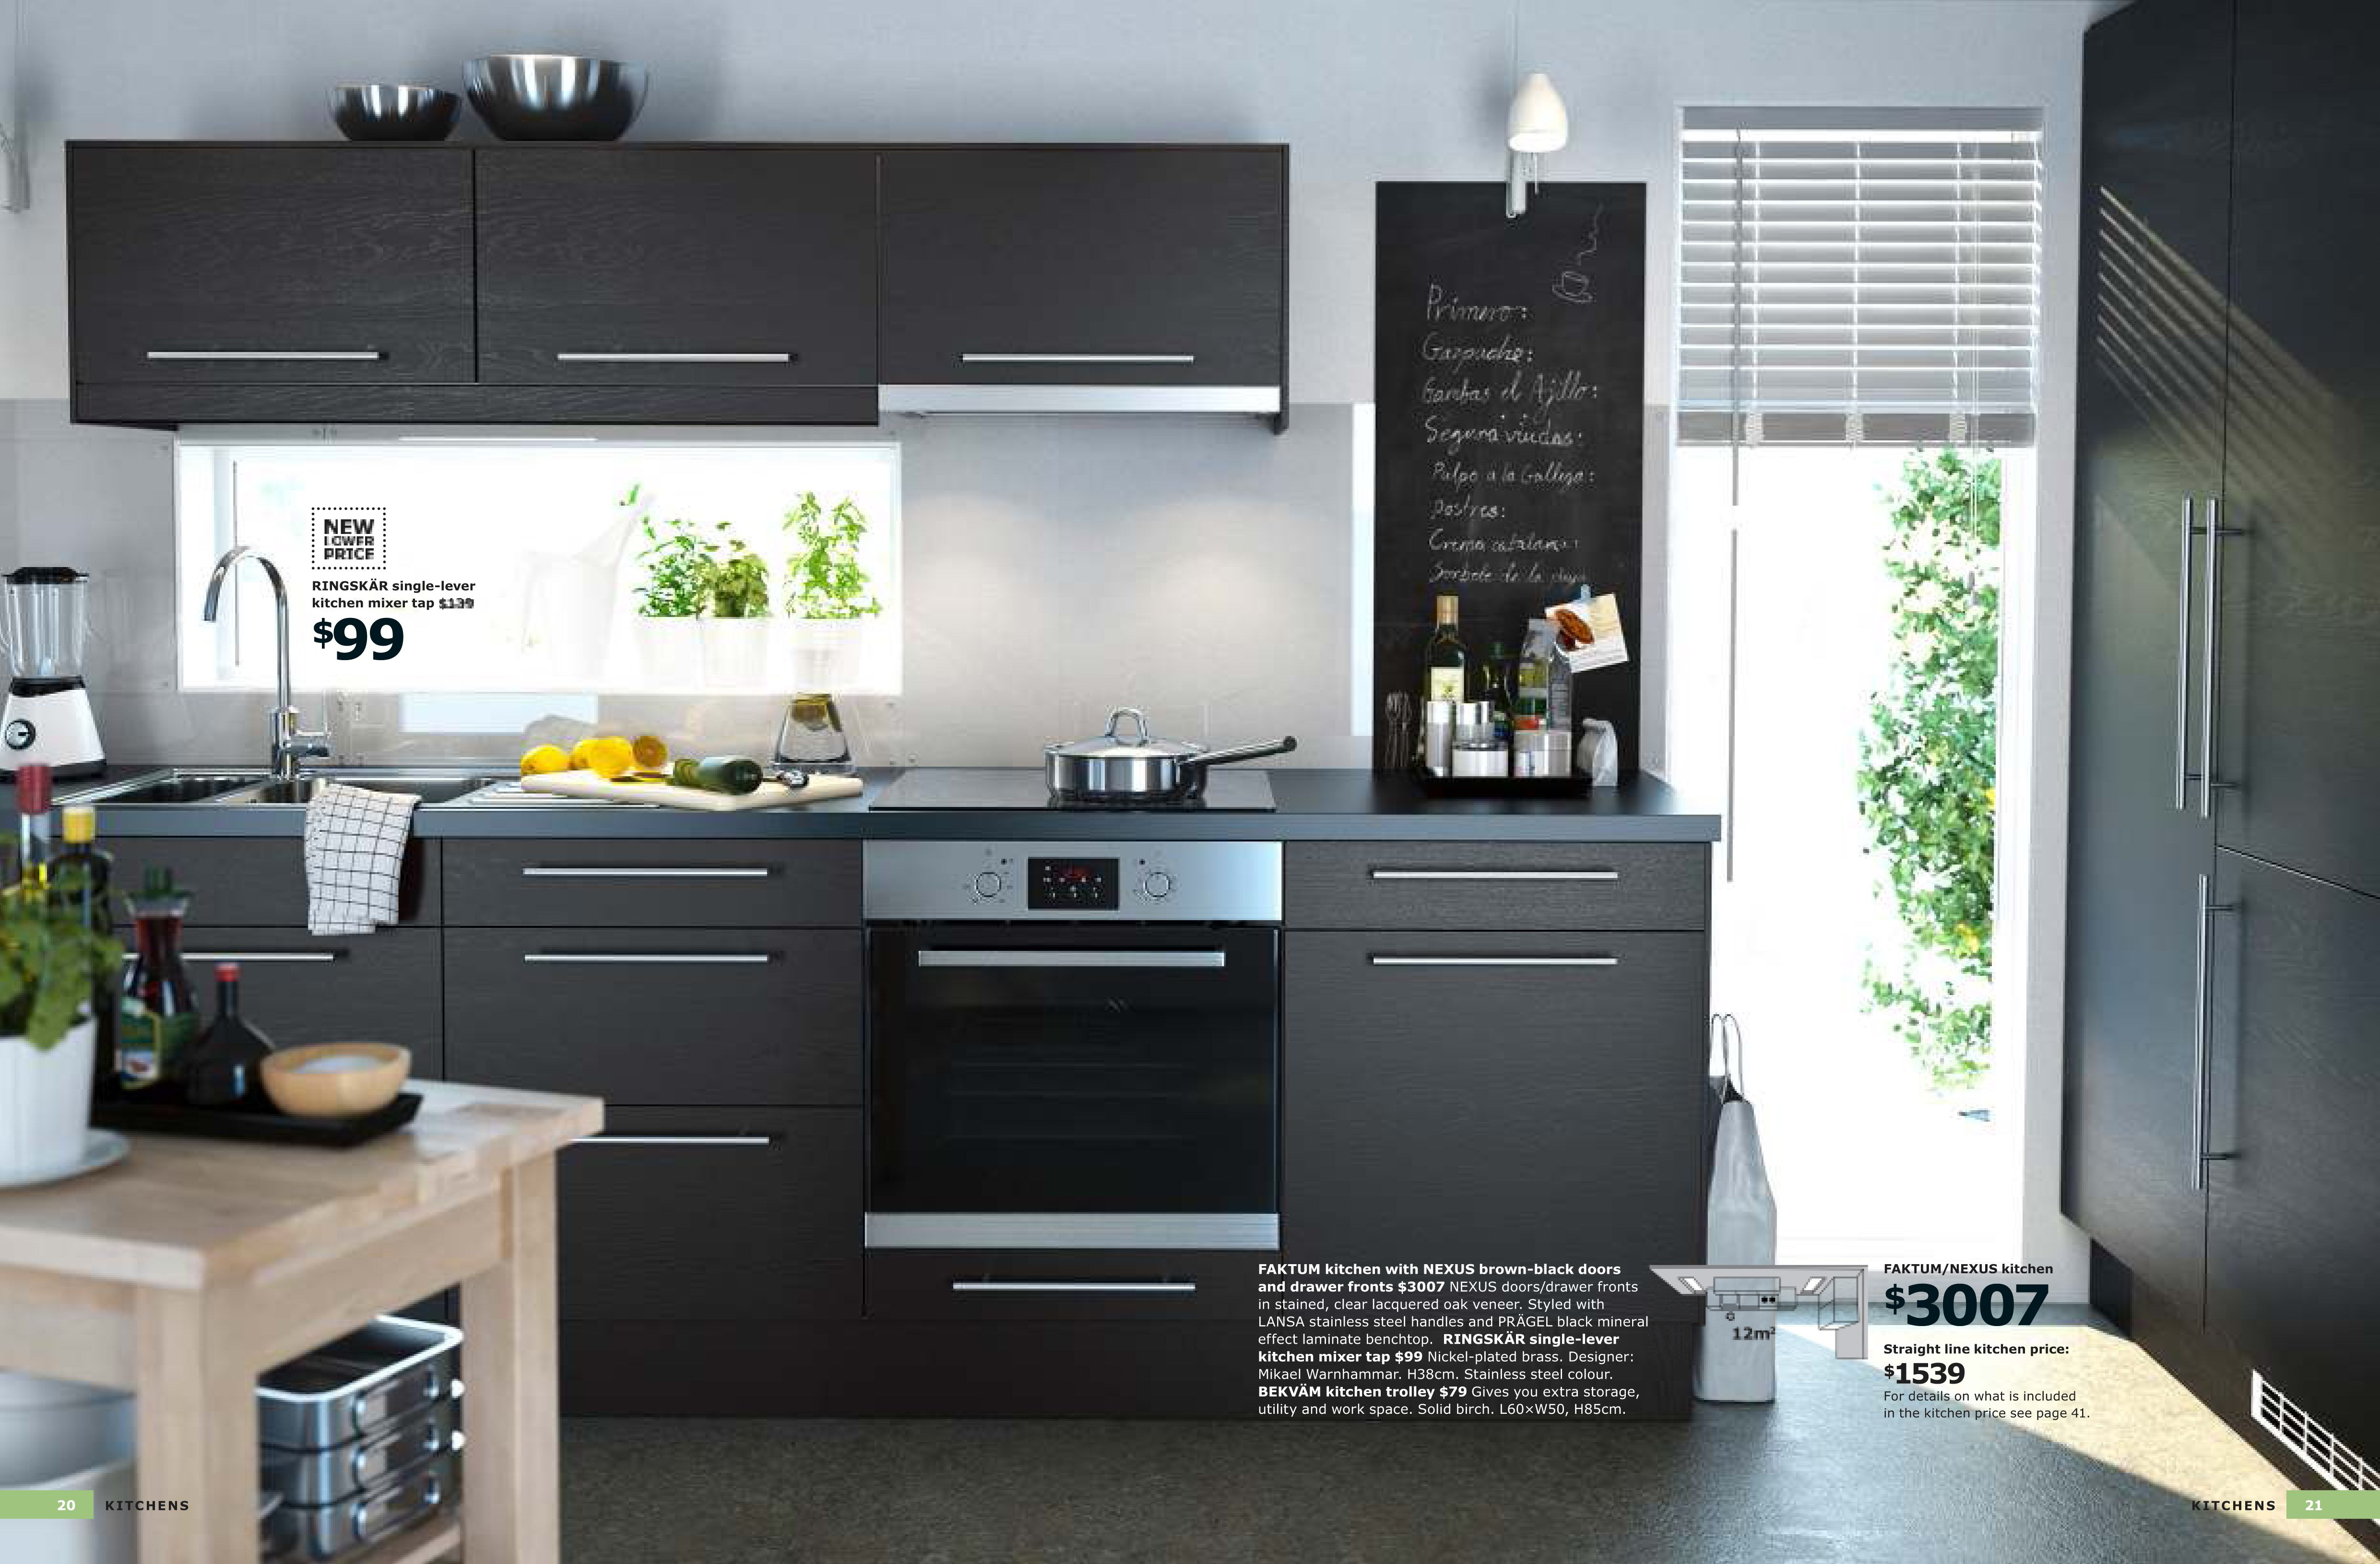 Ikea Kitchen 2012 Catalogue Kitchen Design 7 Ikea